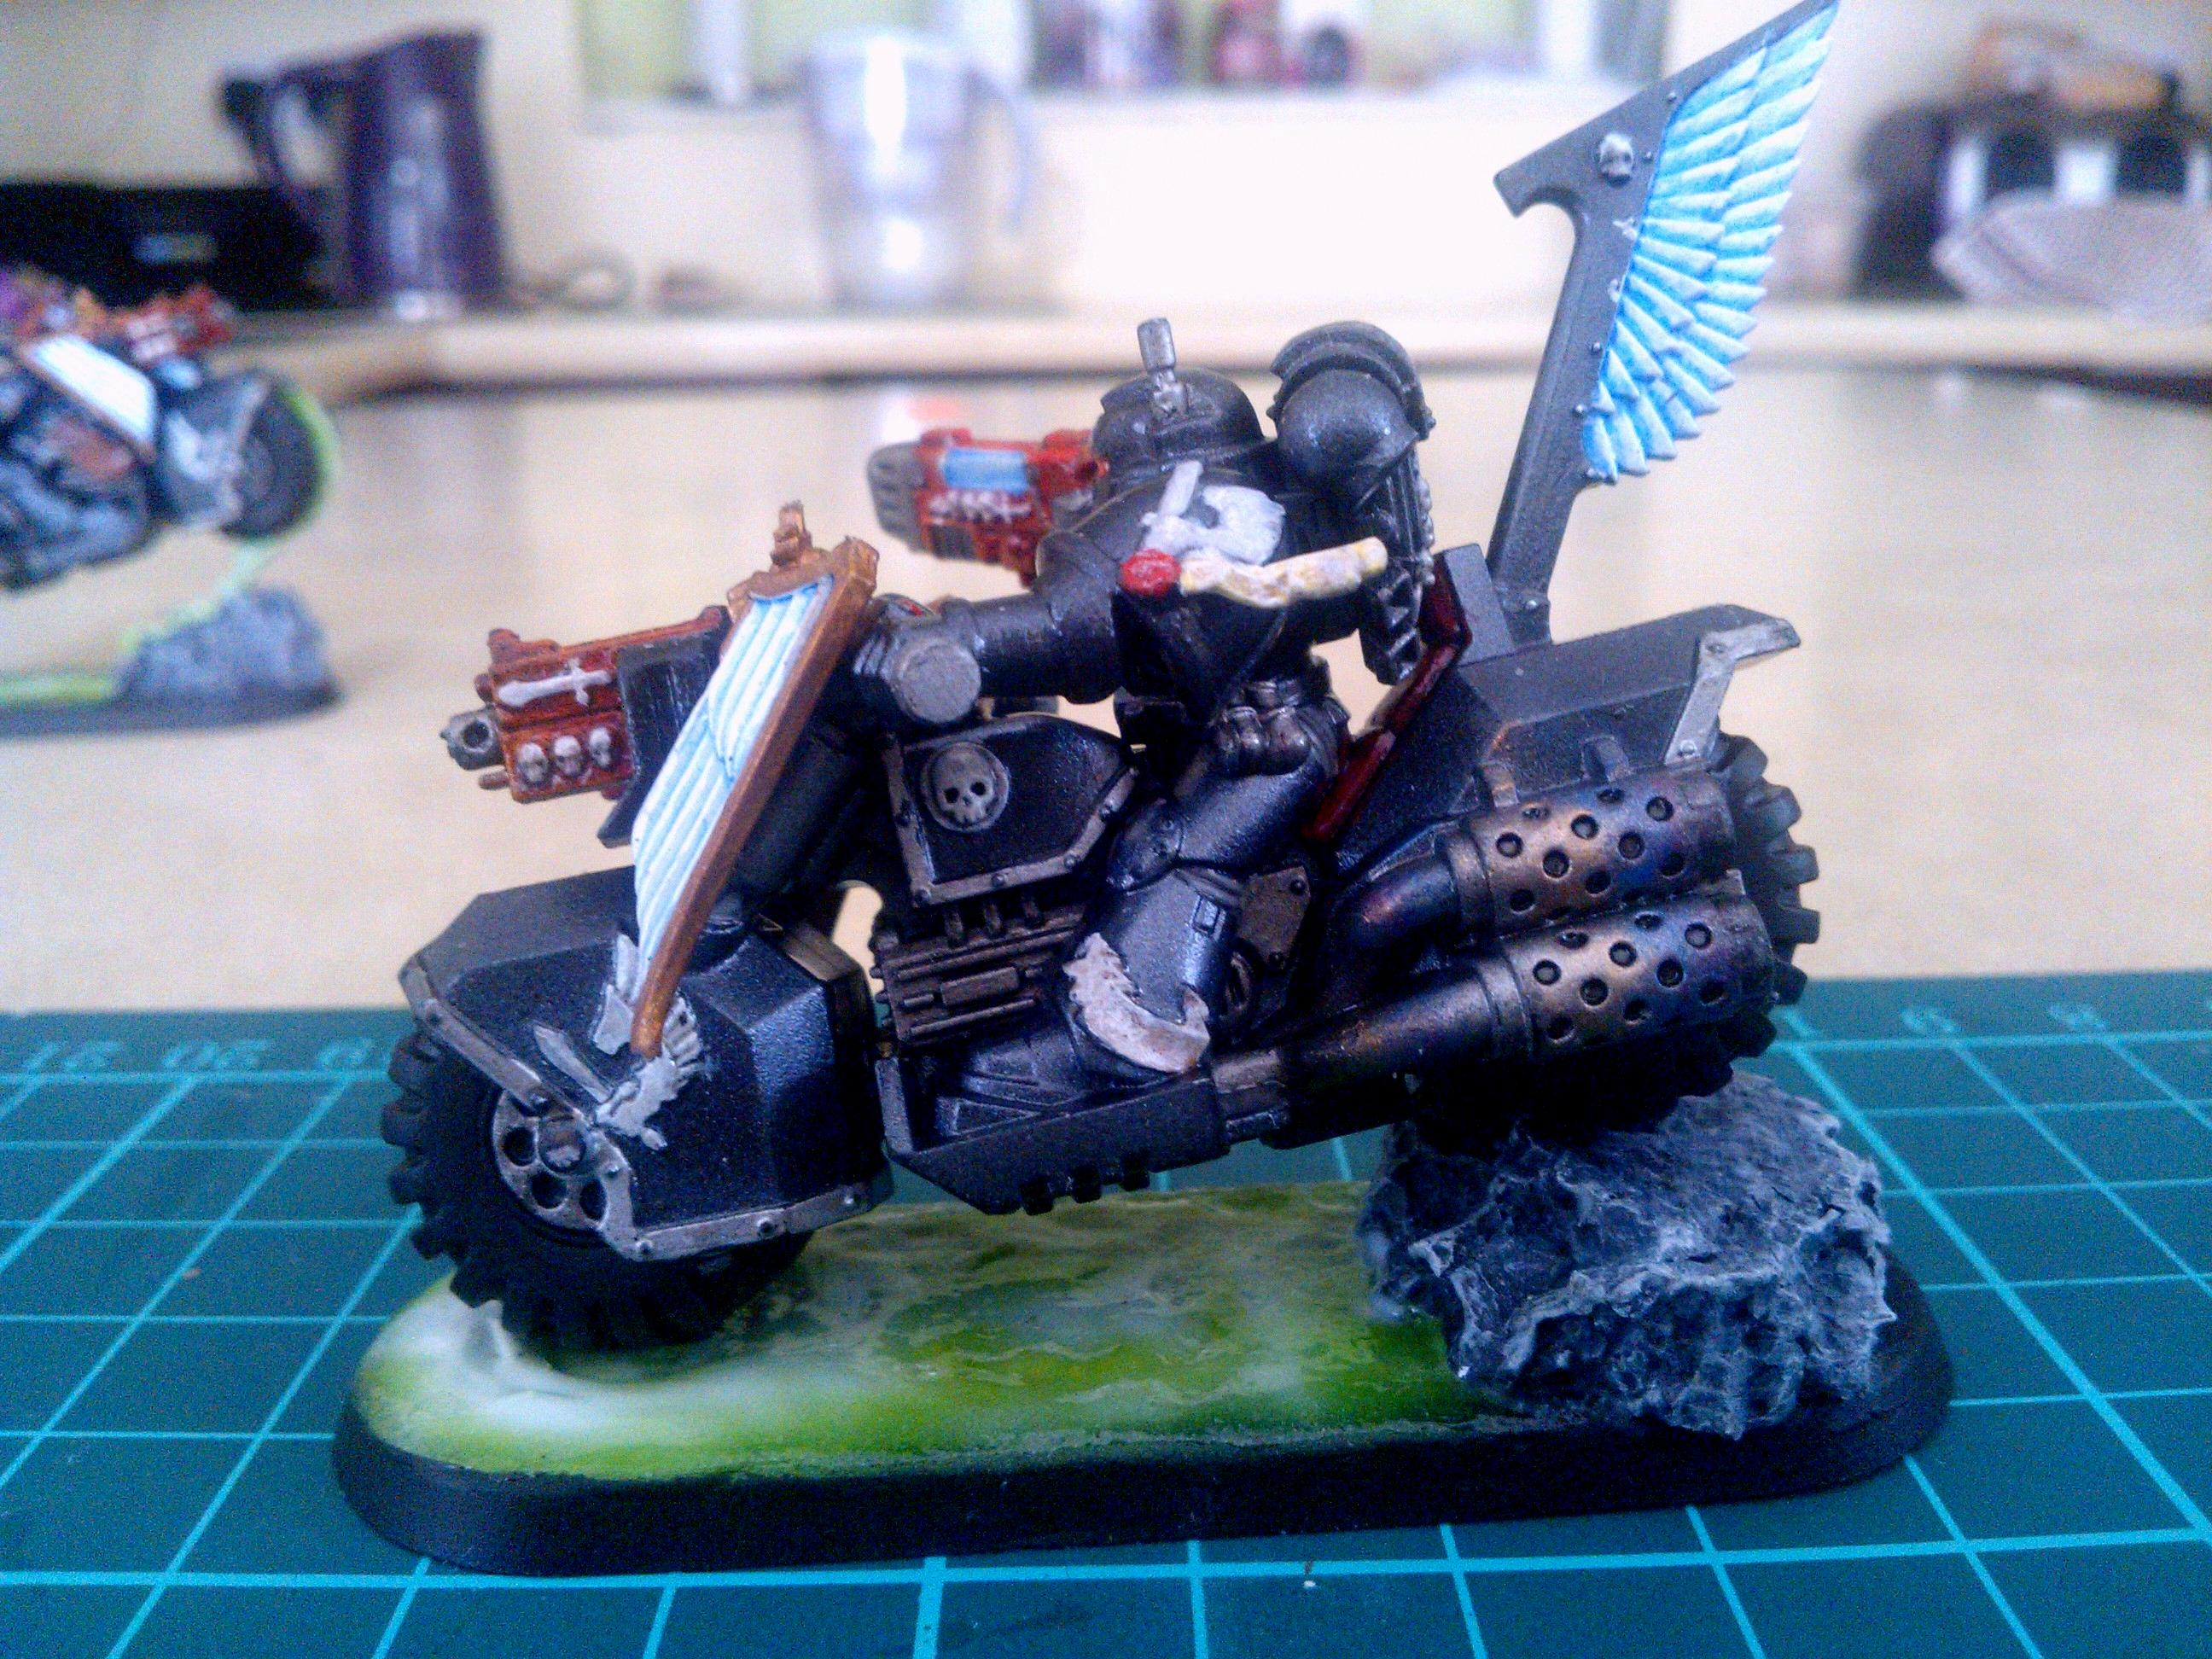 Bike, Dark Vengance, Ravenwing, Slime Base, Space Marines, Warhammer 40,000